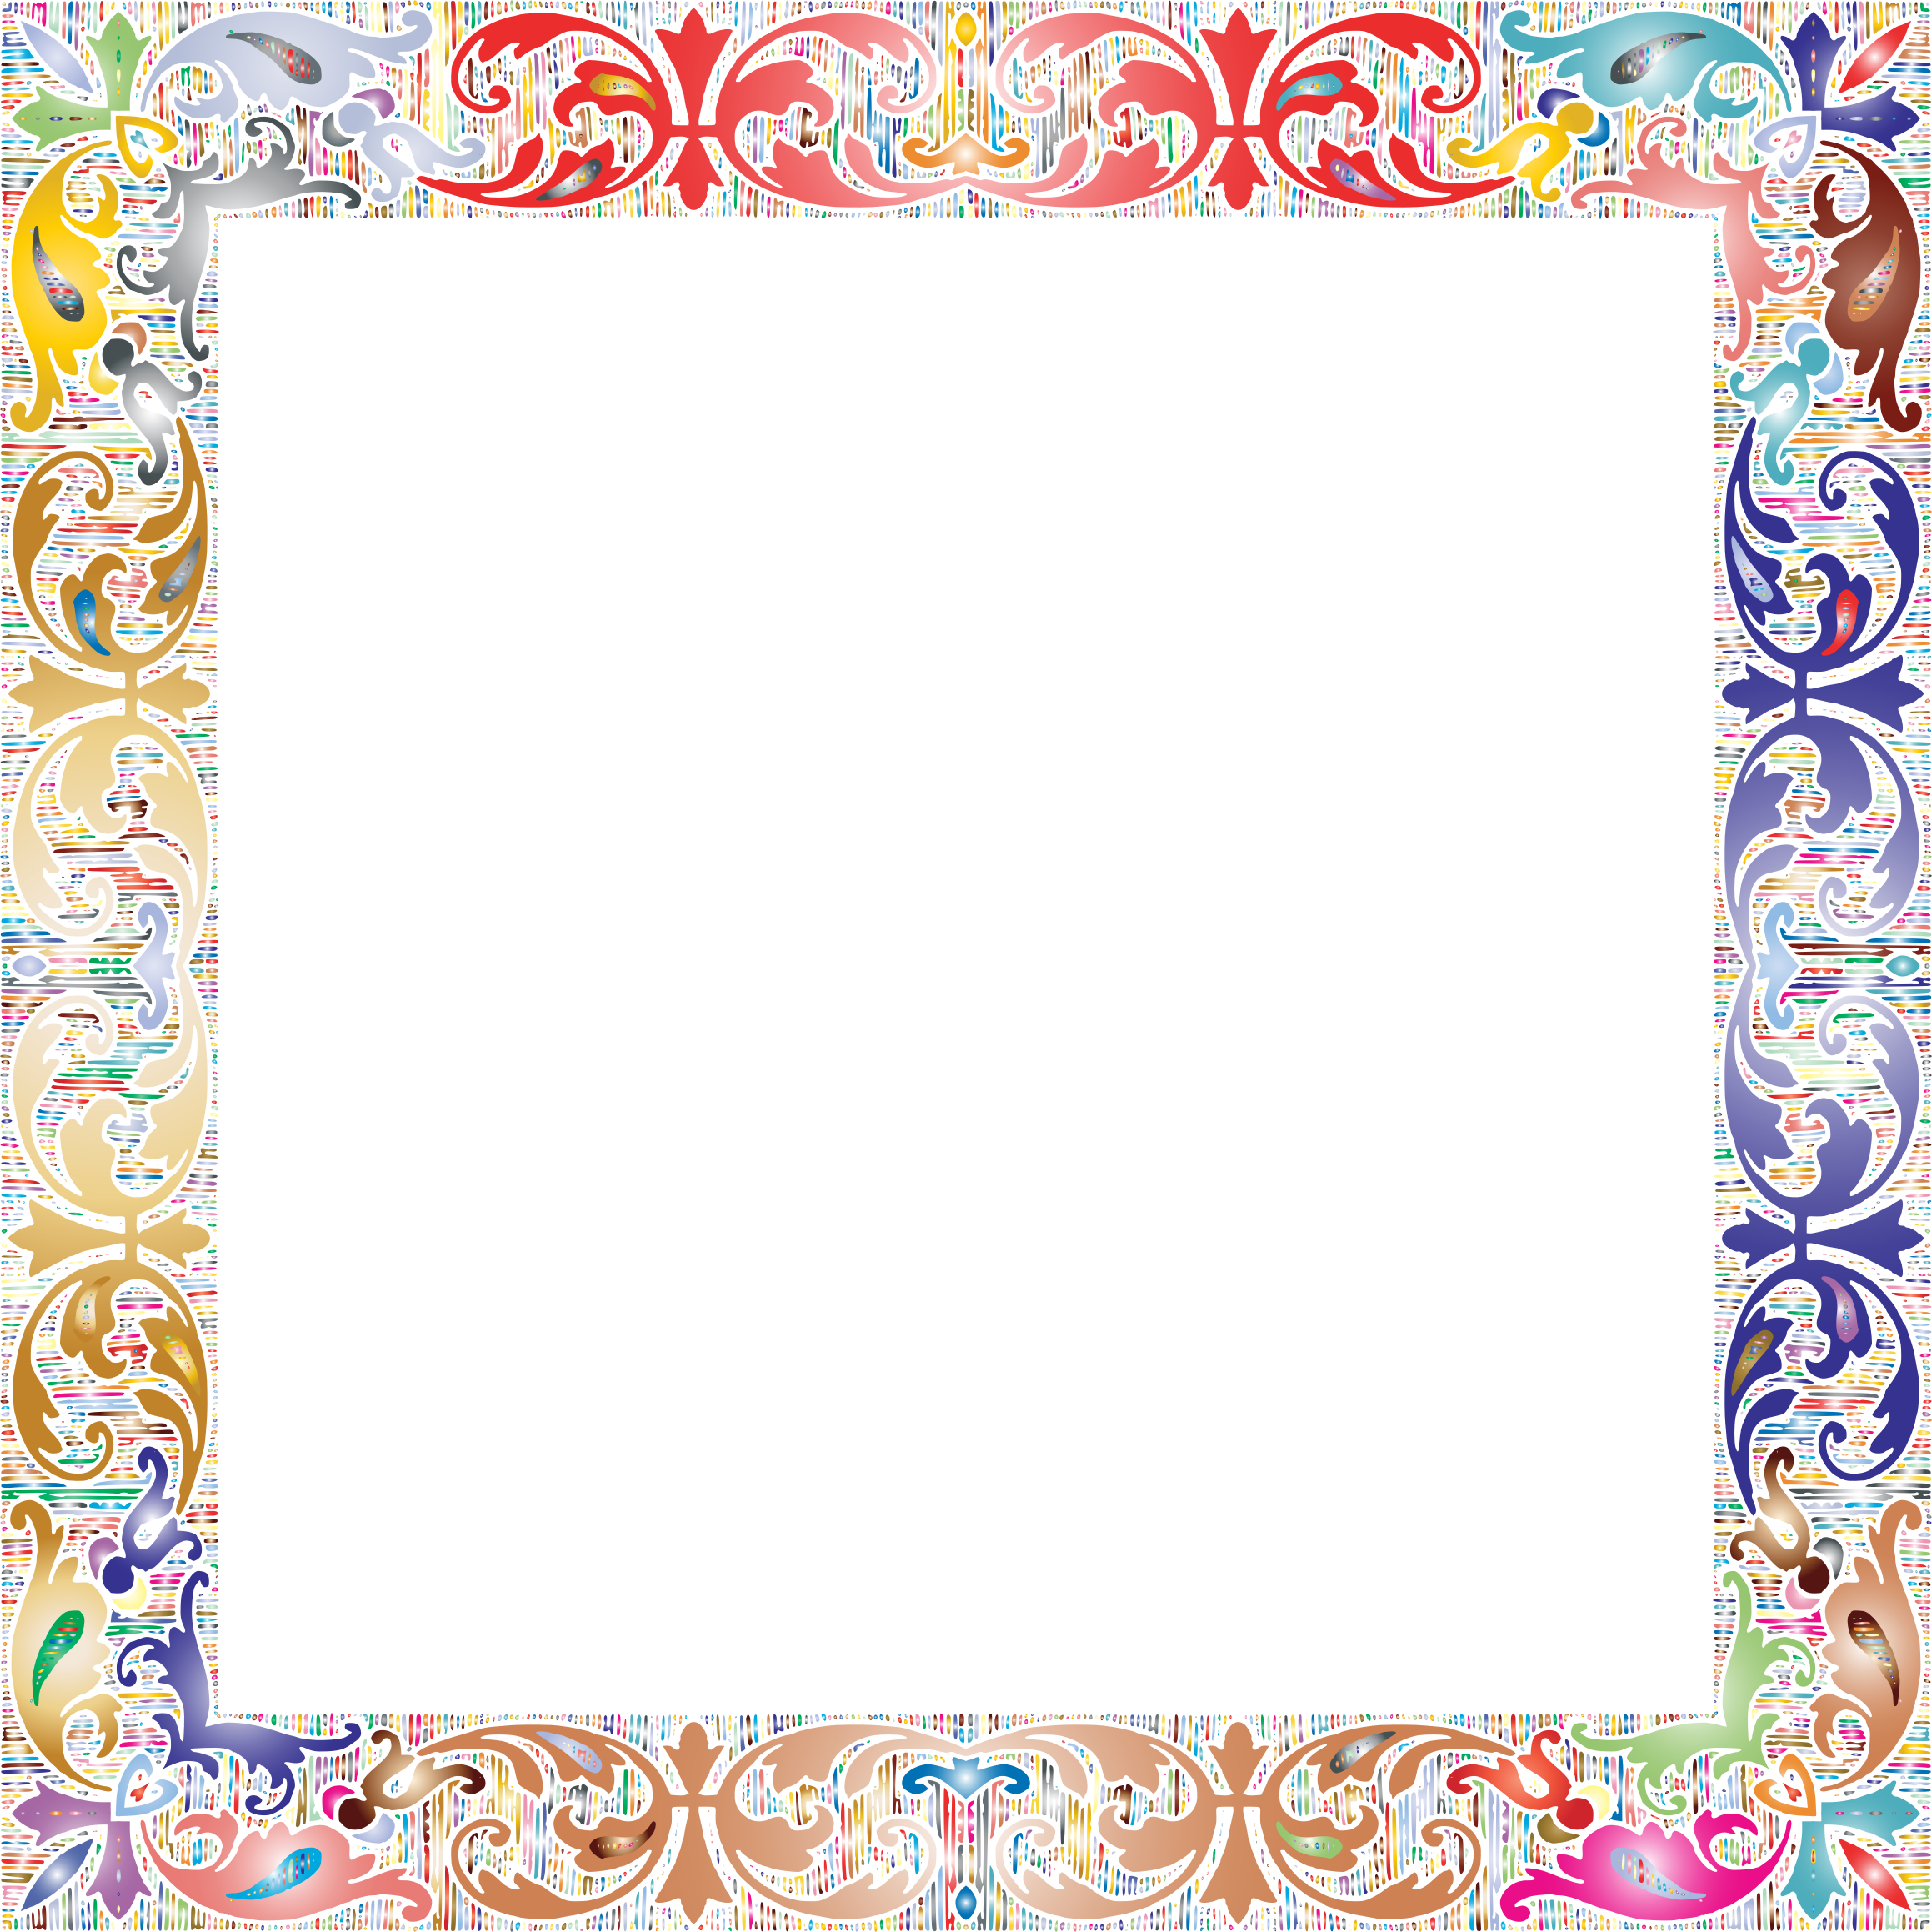 Fancy Vintage Square Frame 2 Prismatic No Background by GDJ